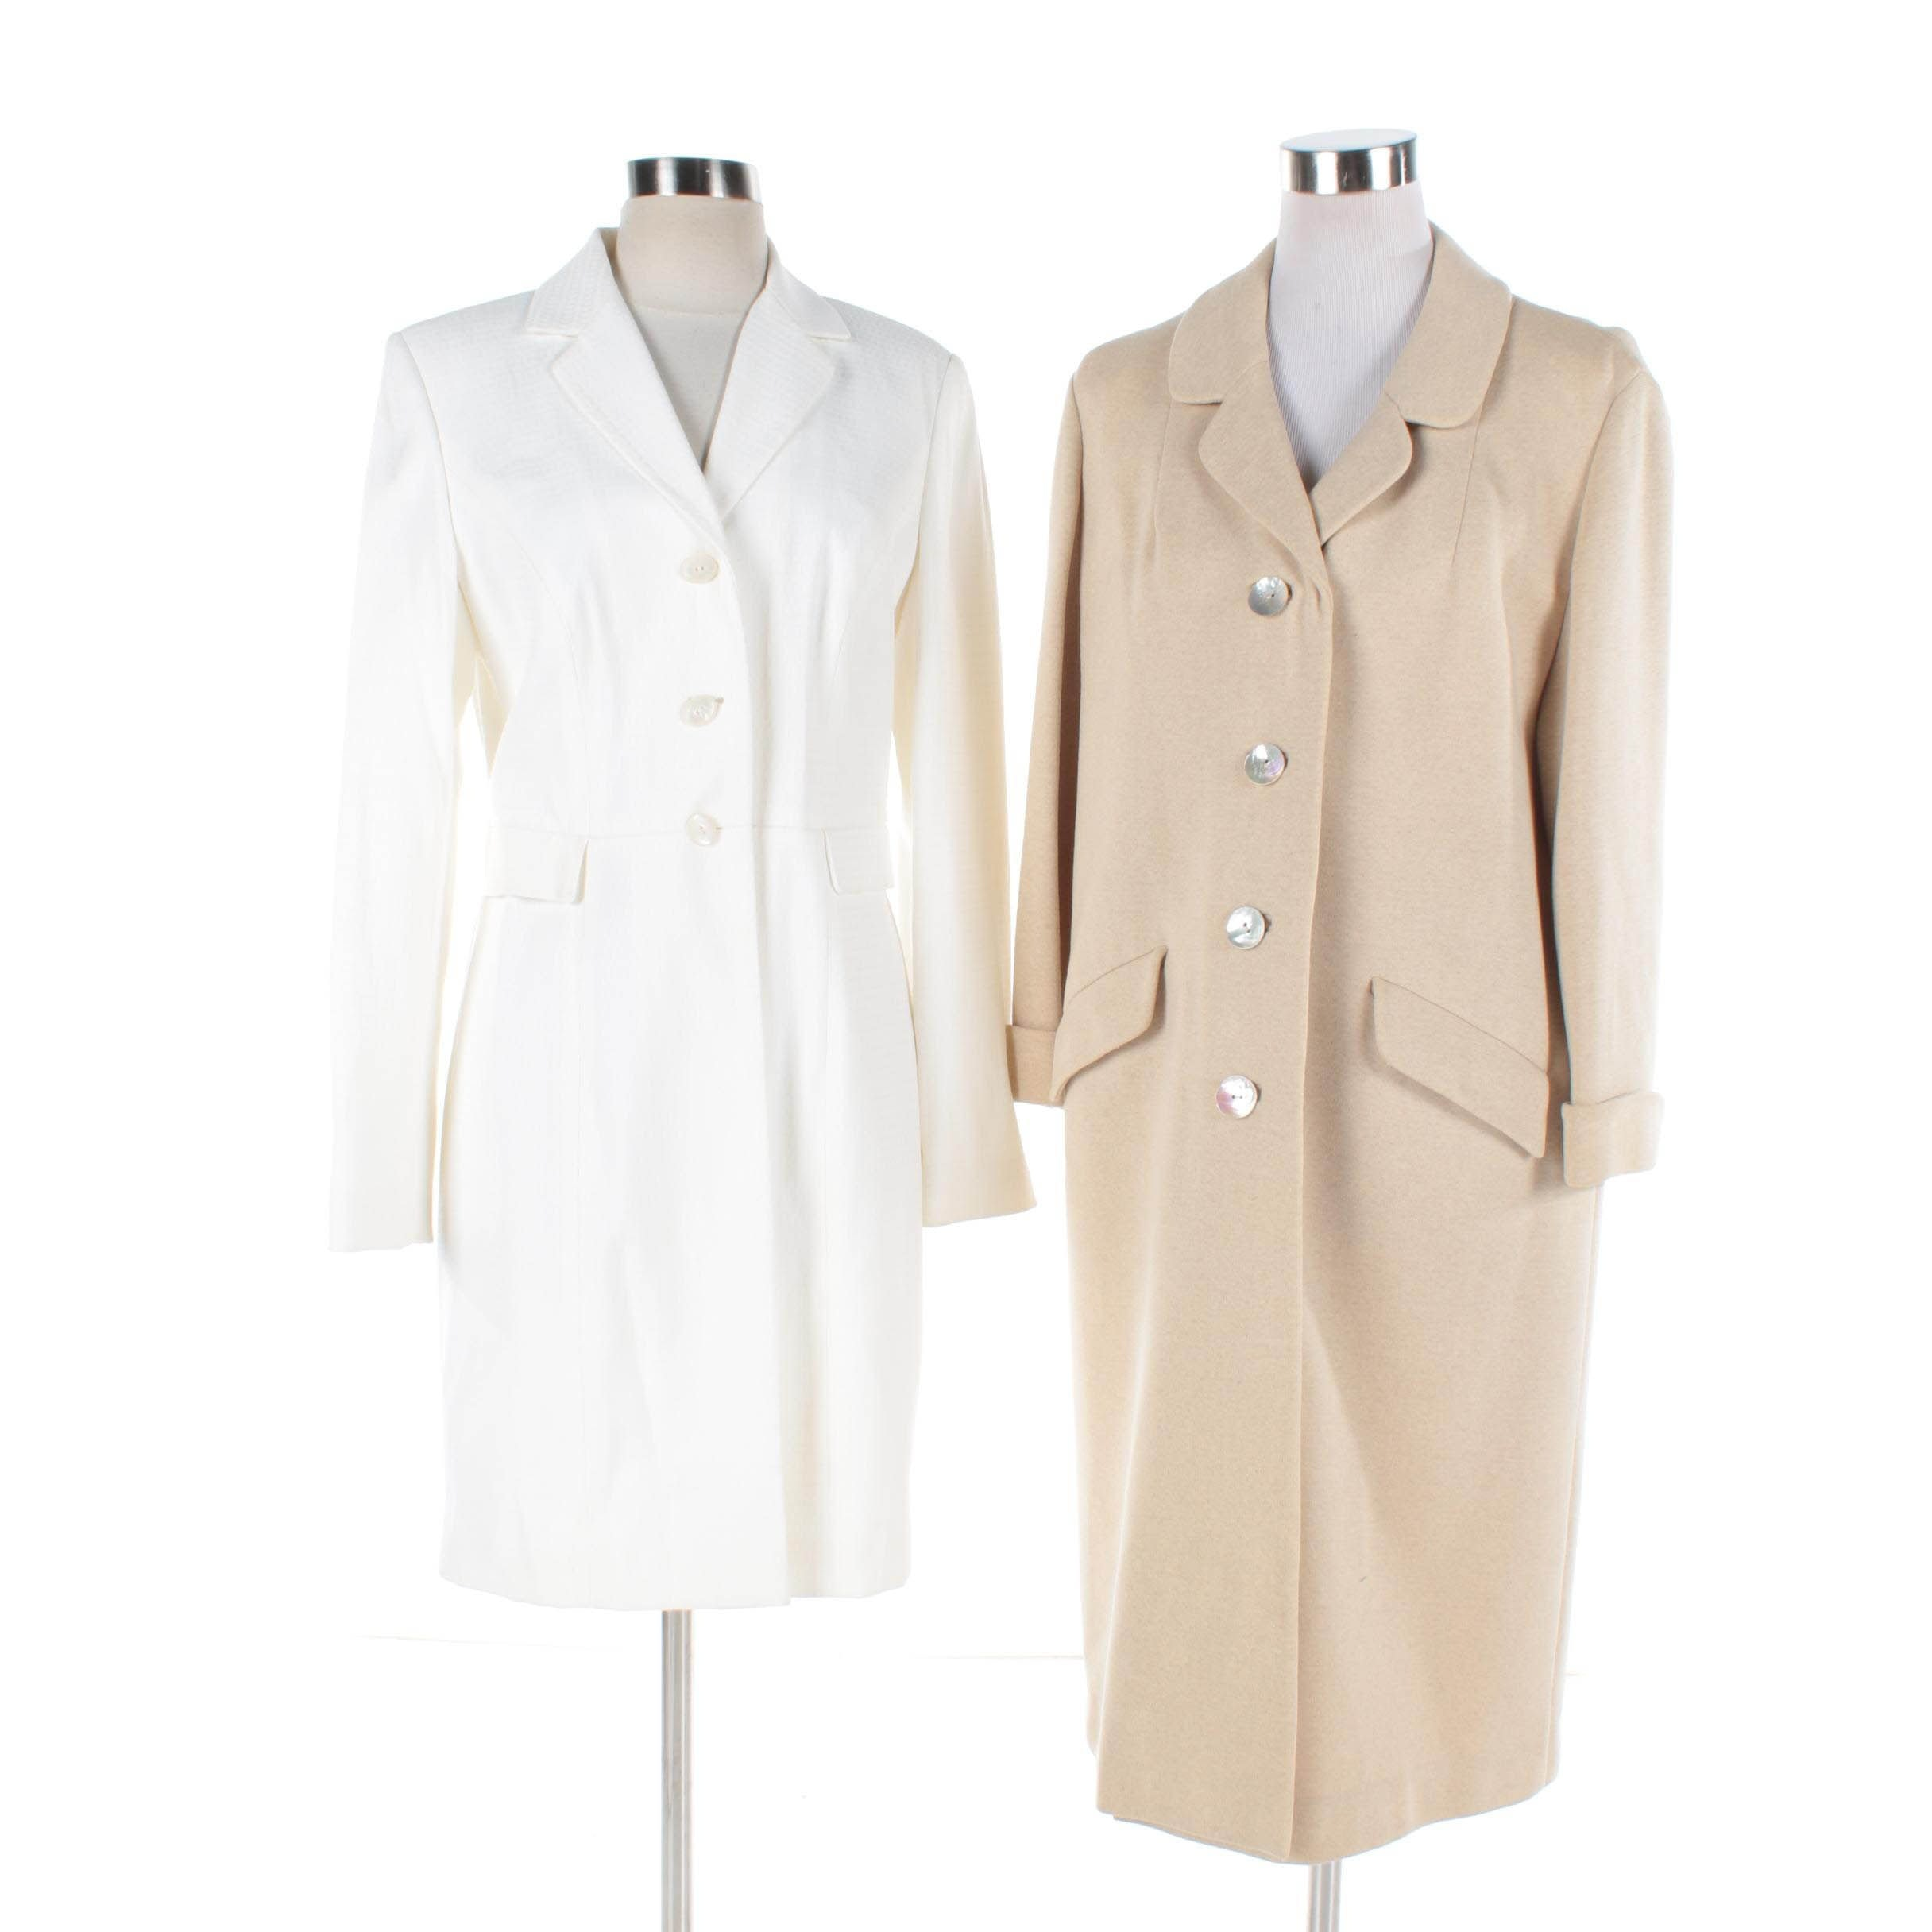 Women's Outerwear, Including Deréta